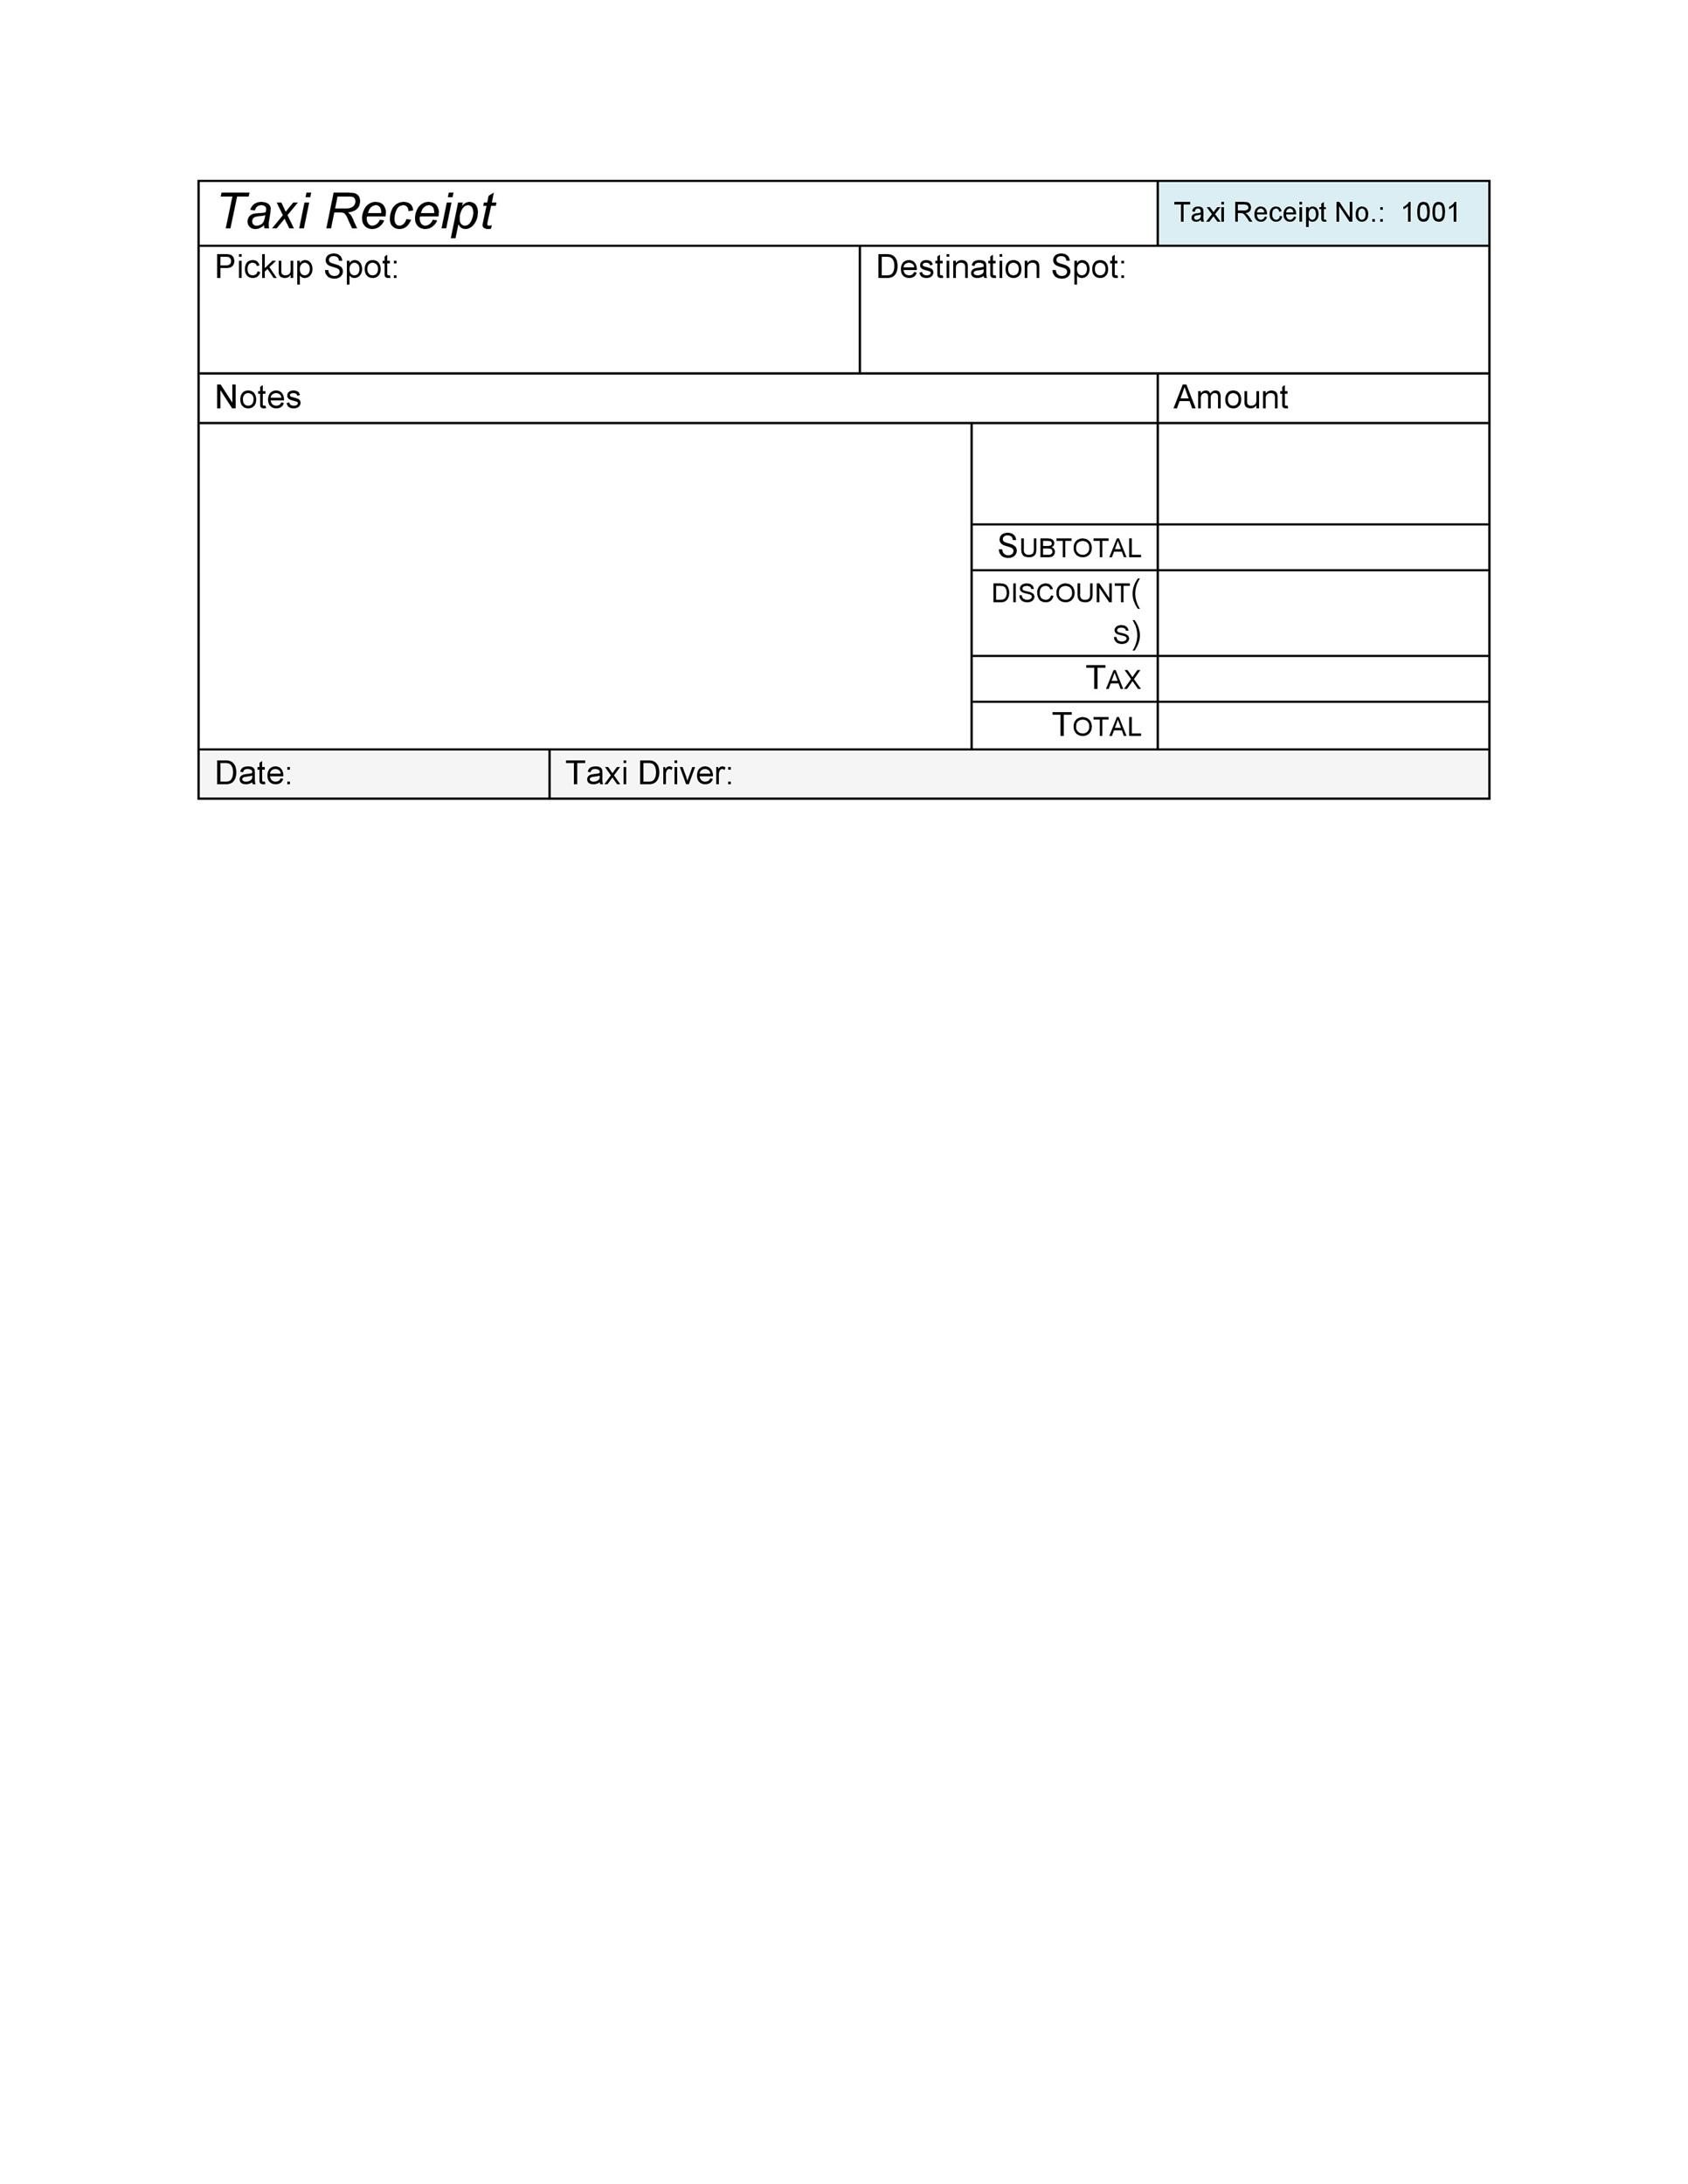 50 Free Receipt Templates Cash Sales Donation Taxi – Taxi Bill Format in Word